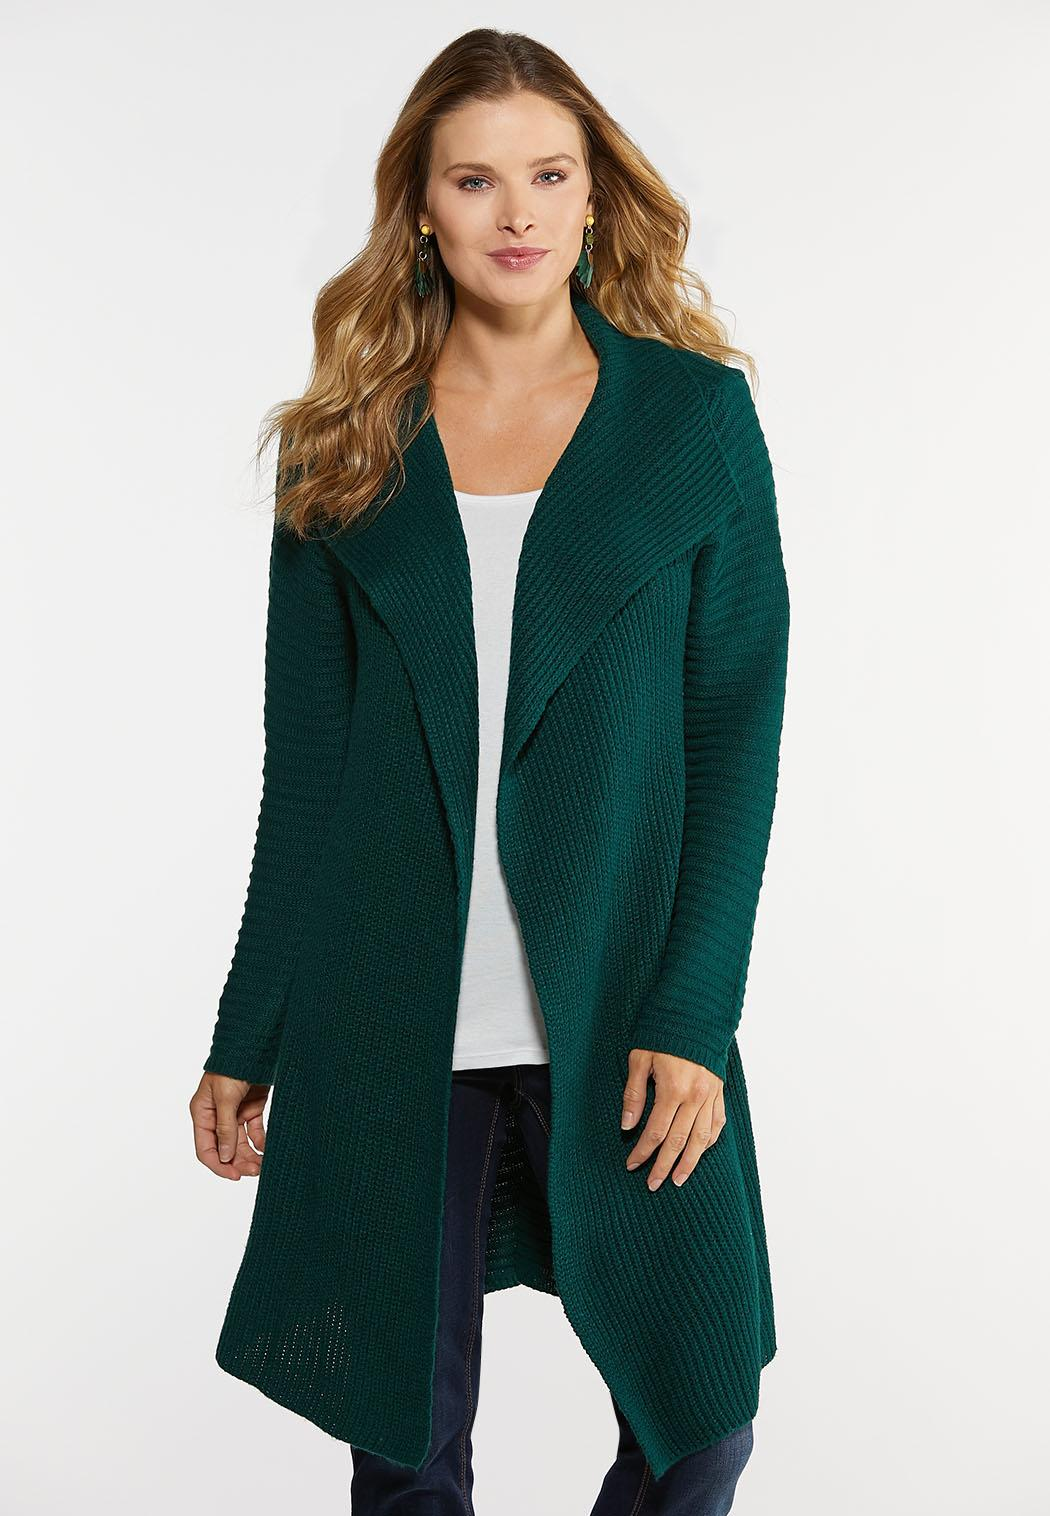 Knit Yarn Cardigan